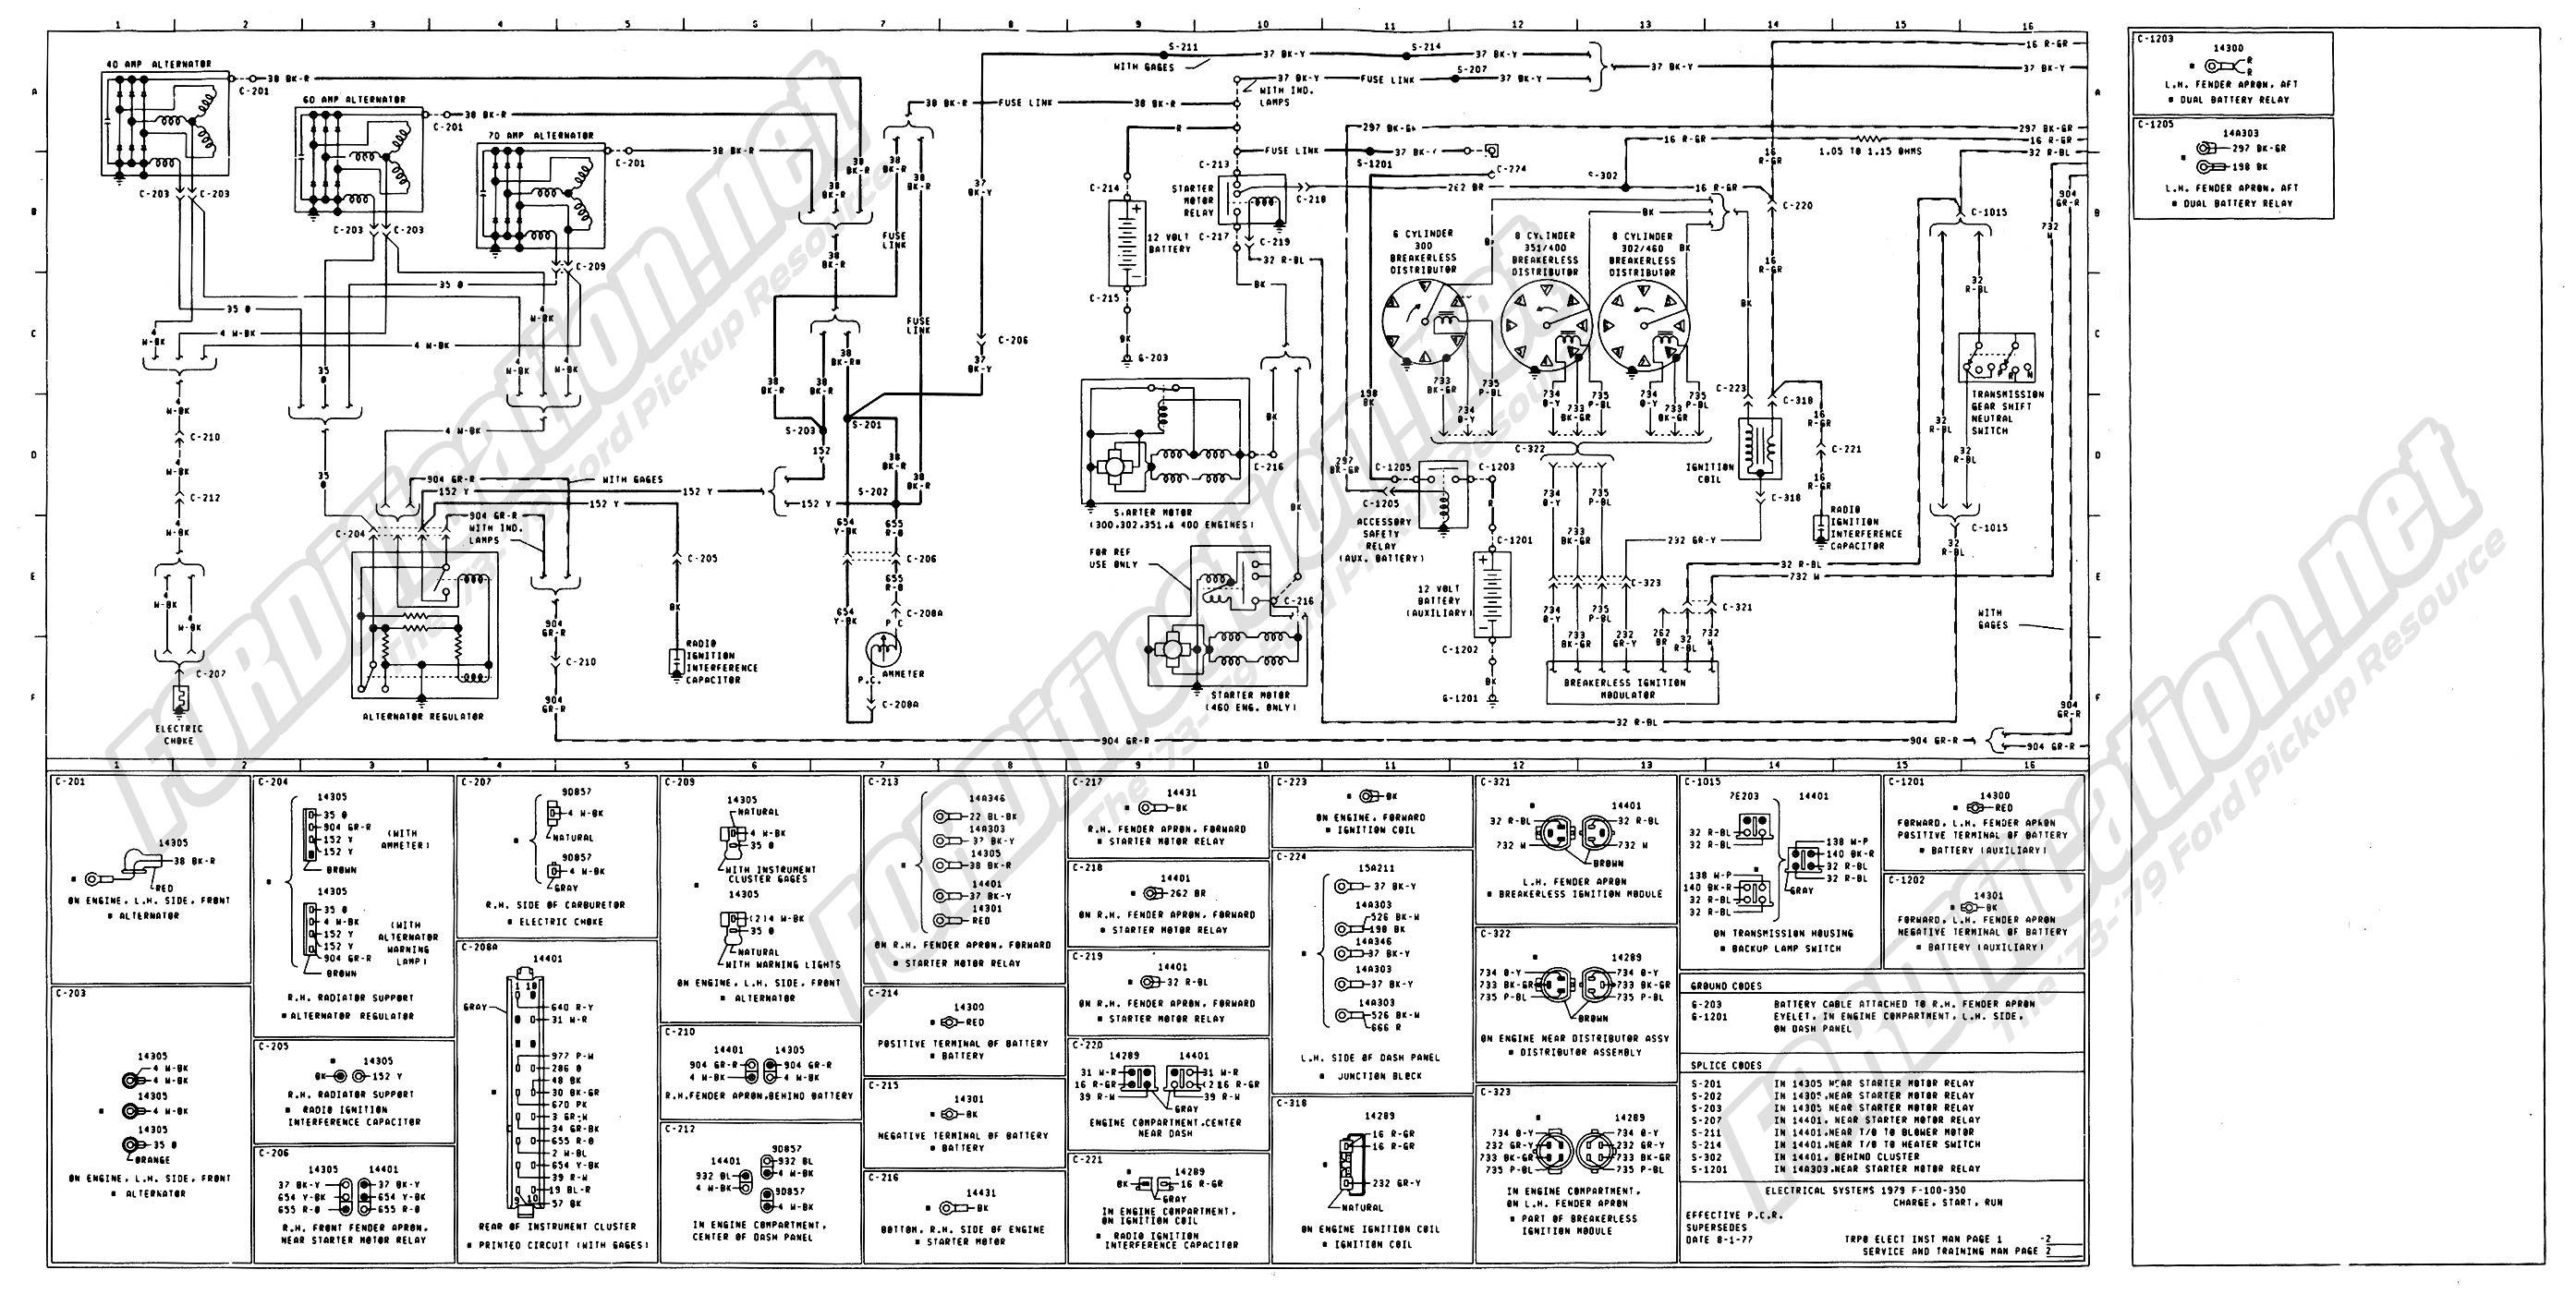 1978 ford f700 wiring diagram wiring diagram schematics1979 f700 wiring diagram wiring diagram data 1978 ford f700 wiring diagram